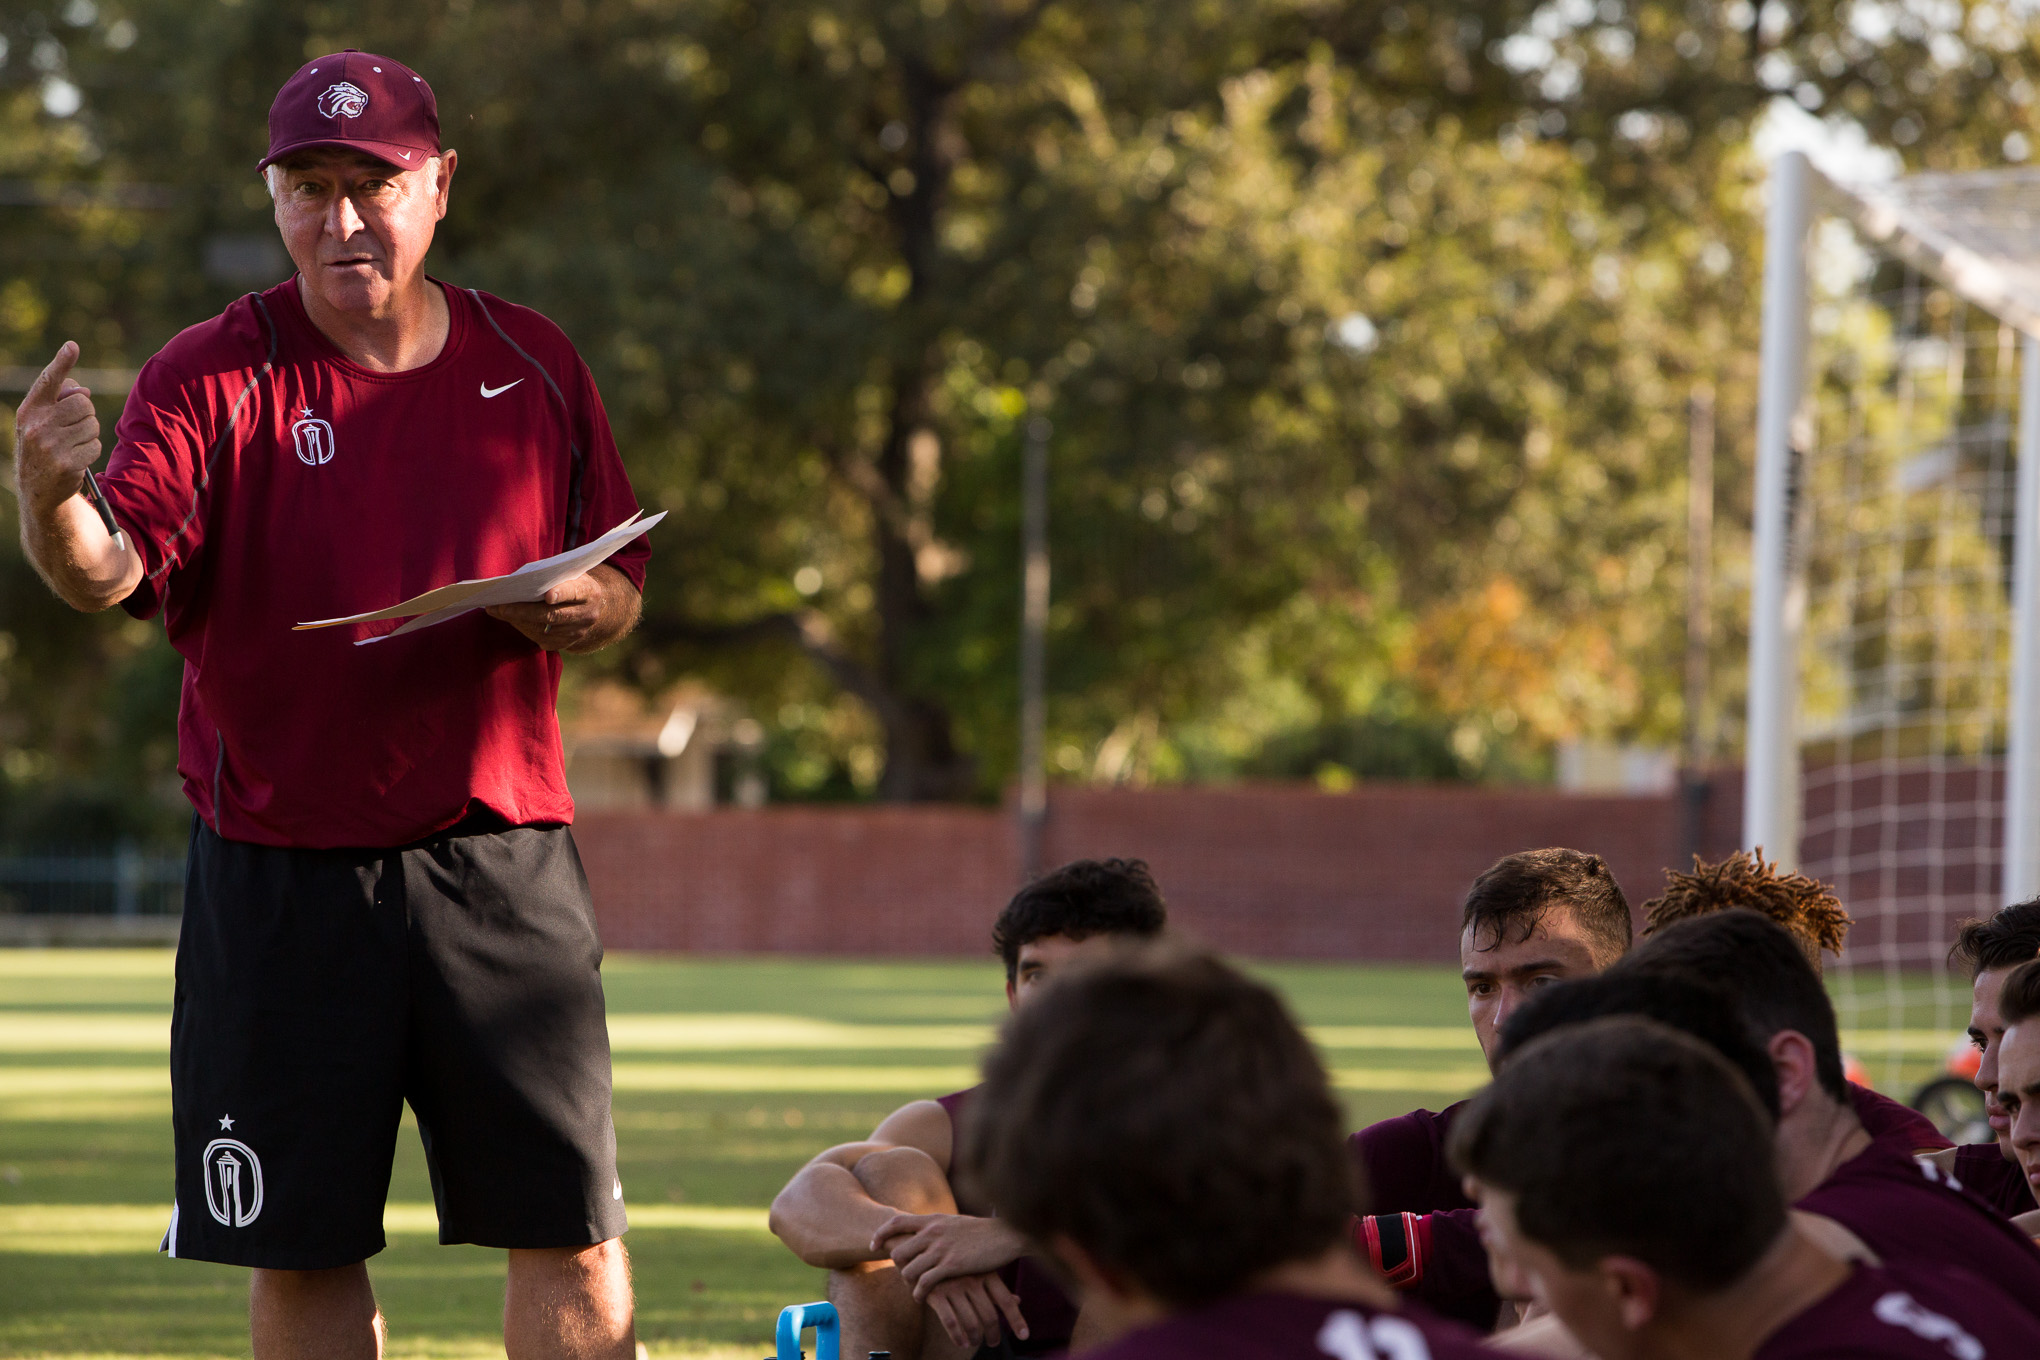 Trinity Men's Soccer Coach Paul McGinlay discusses last weeks game to his team. Photo by Scott Ball.